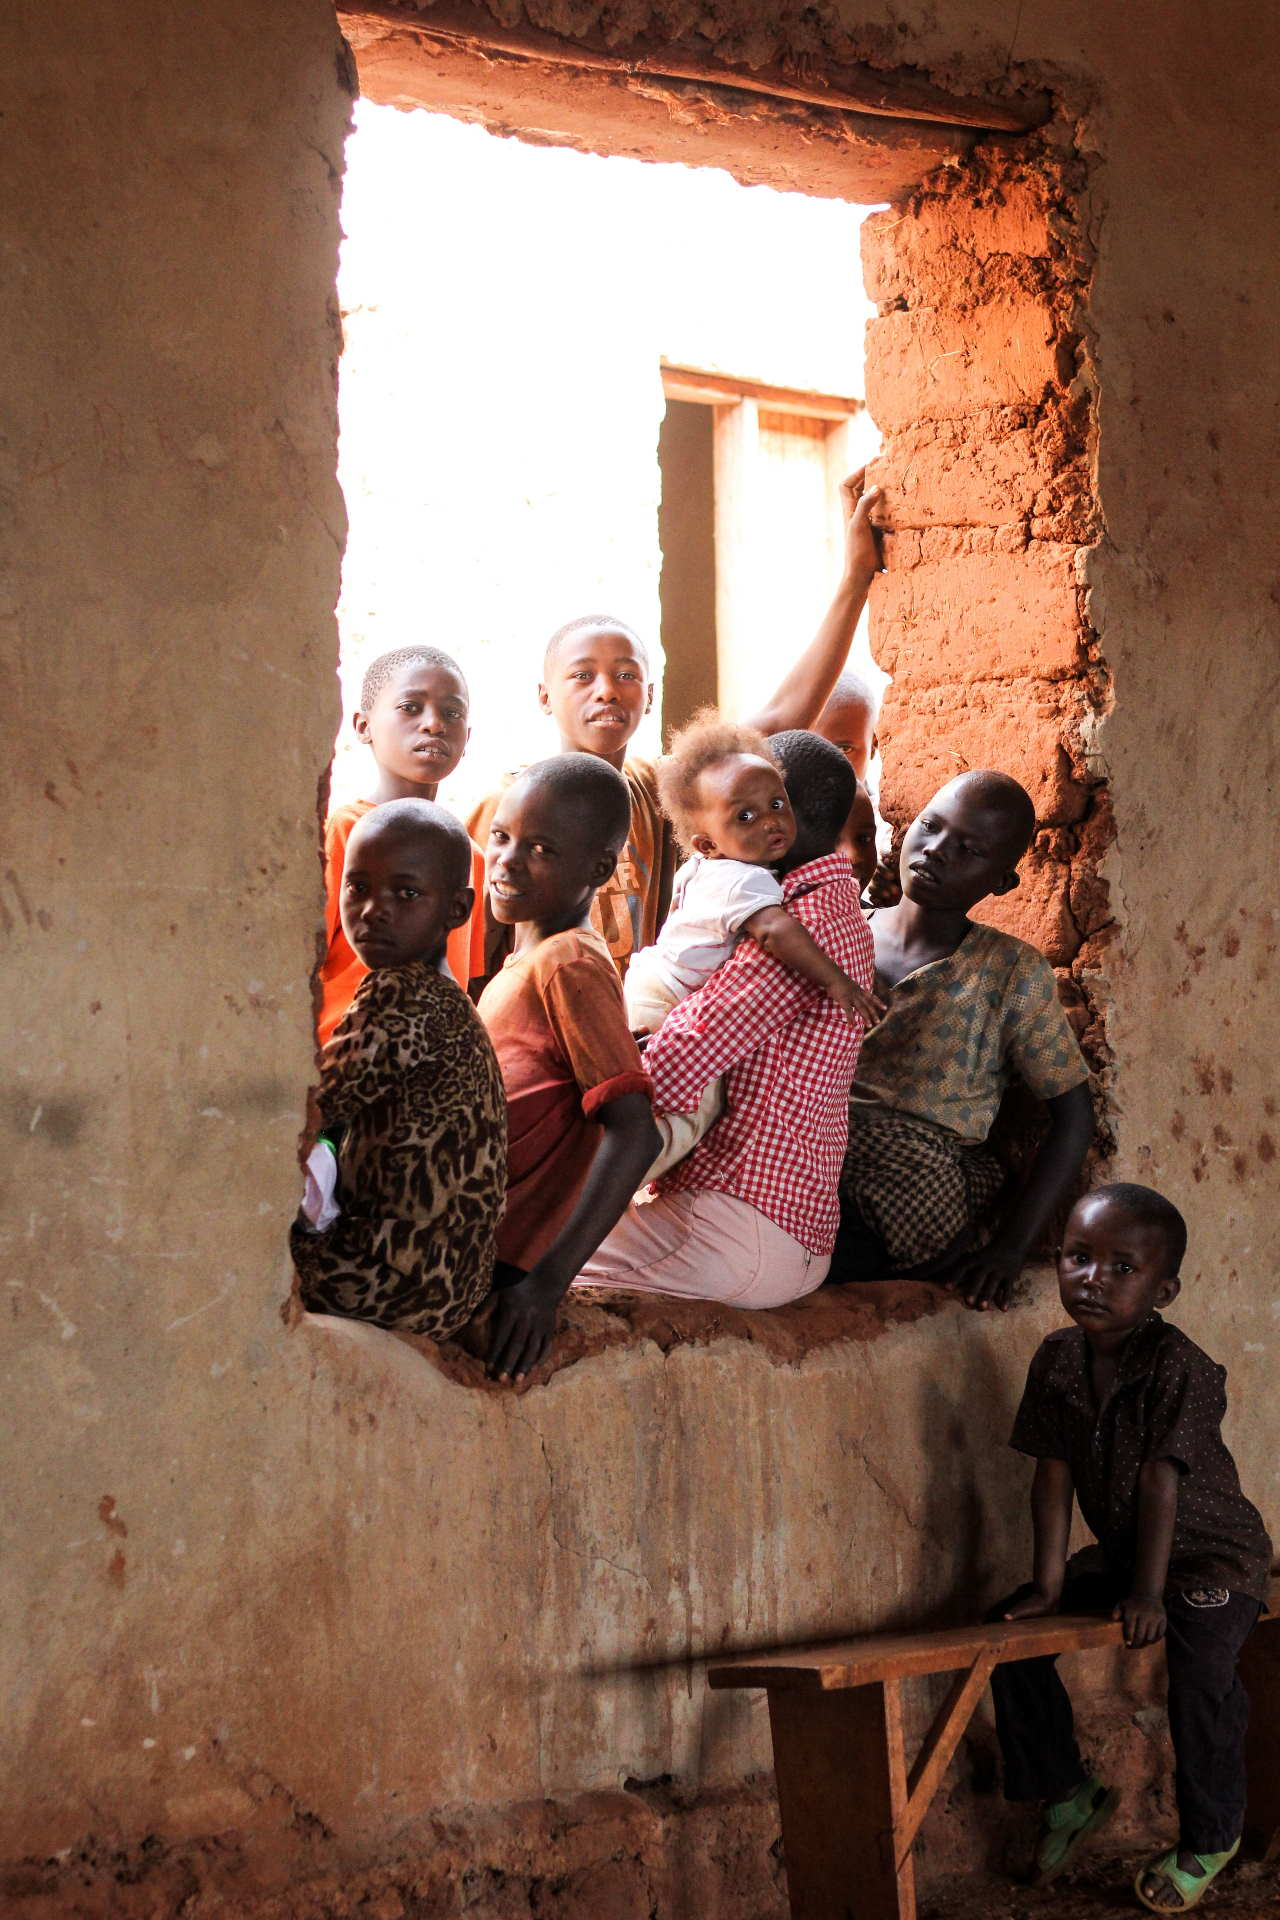 A group of children sitting at a large window